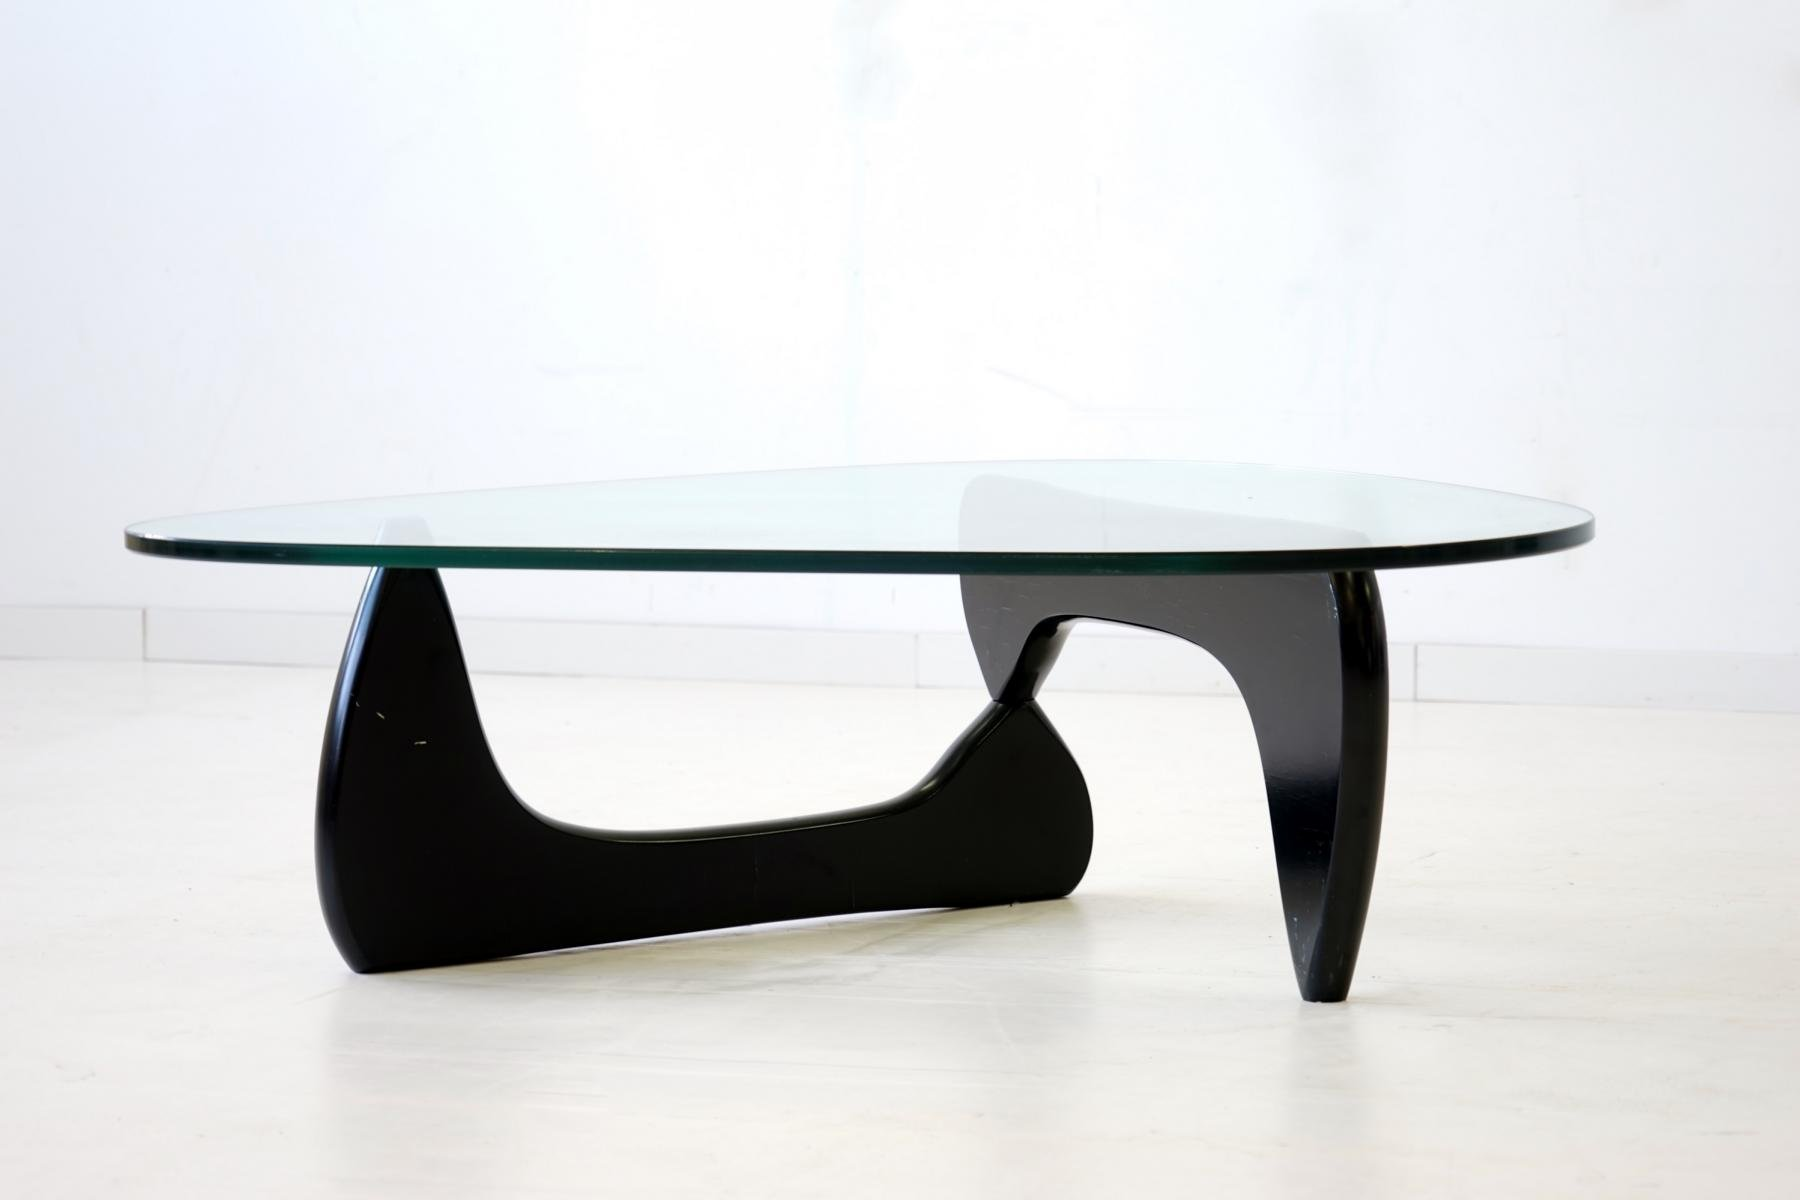 Glass Coffee Table By Isamu Noguchi For Herman Miller 1960s For Sale At Pamono